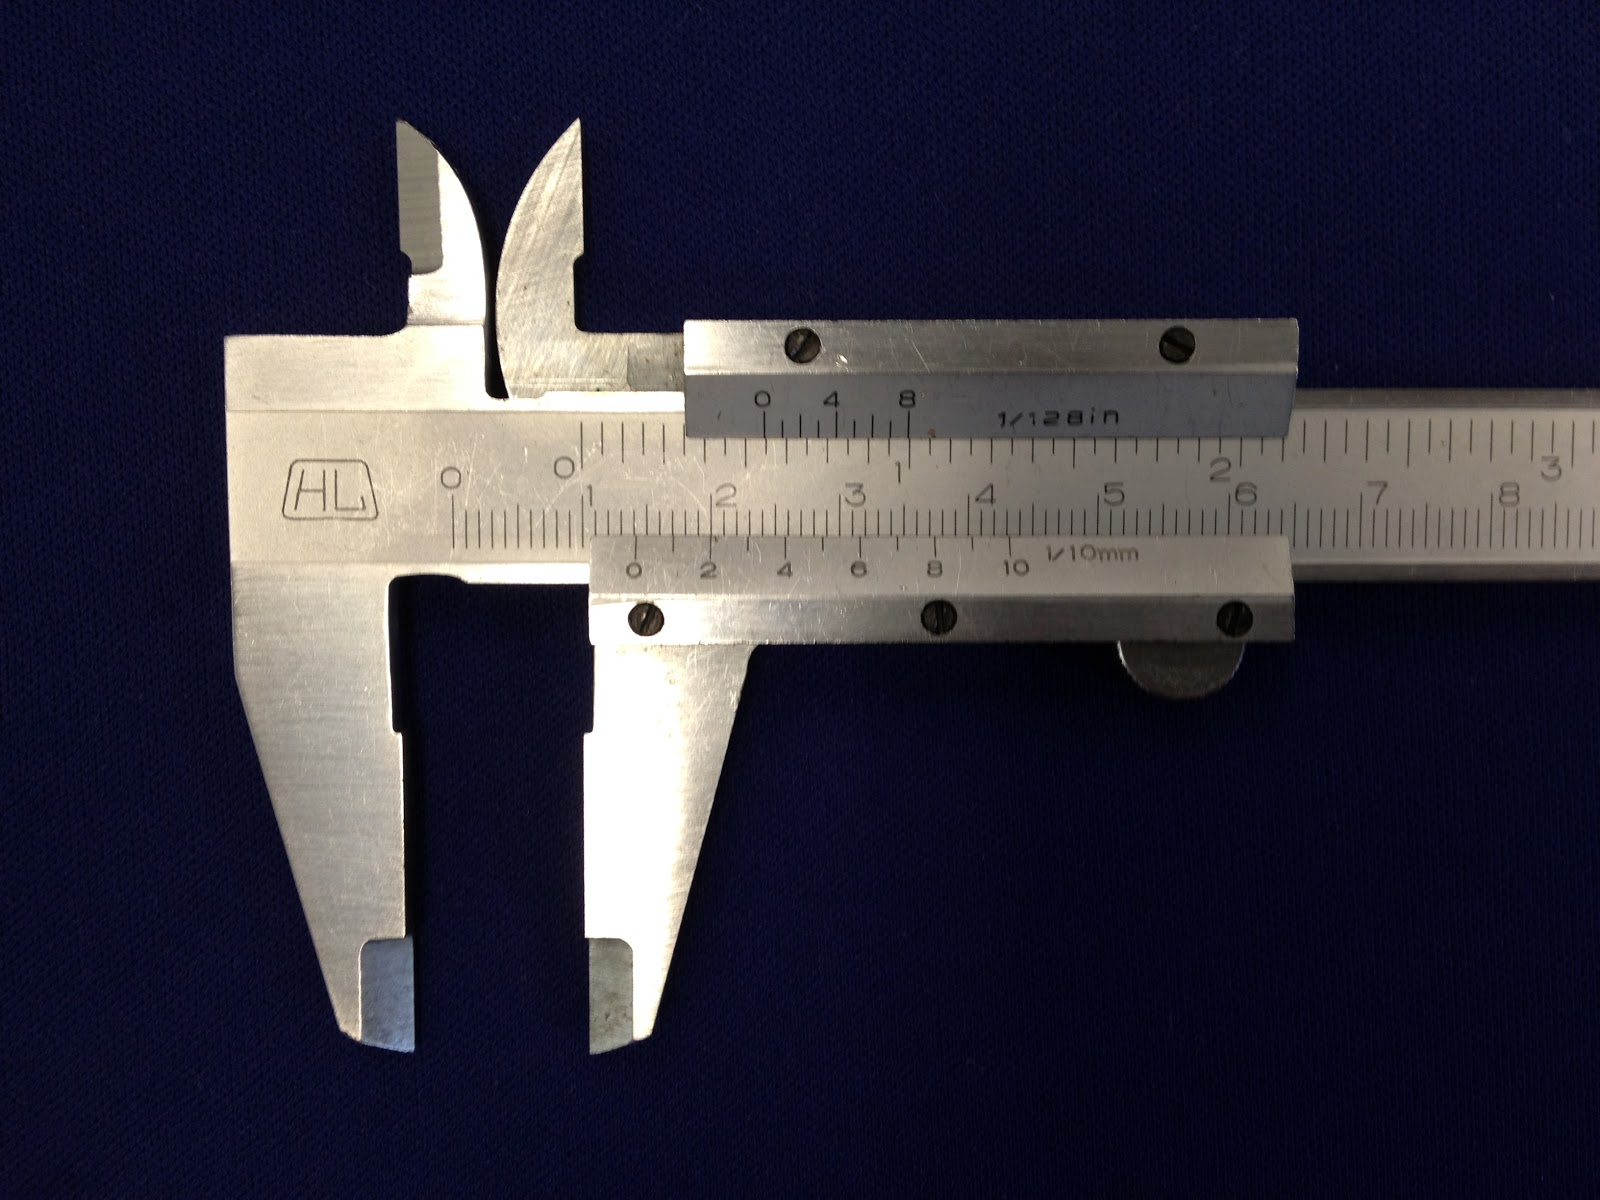 hight resolution of picture taken by lookang on a real vernier caliper